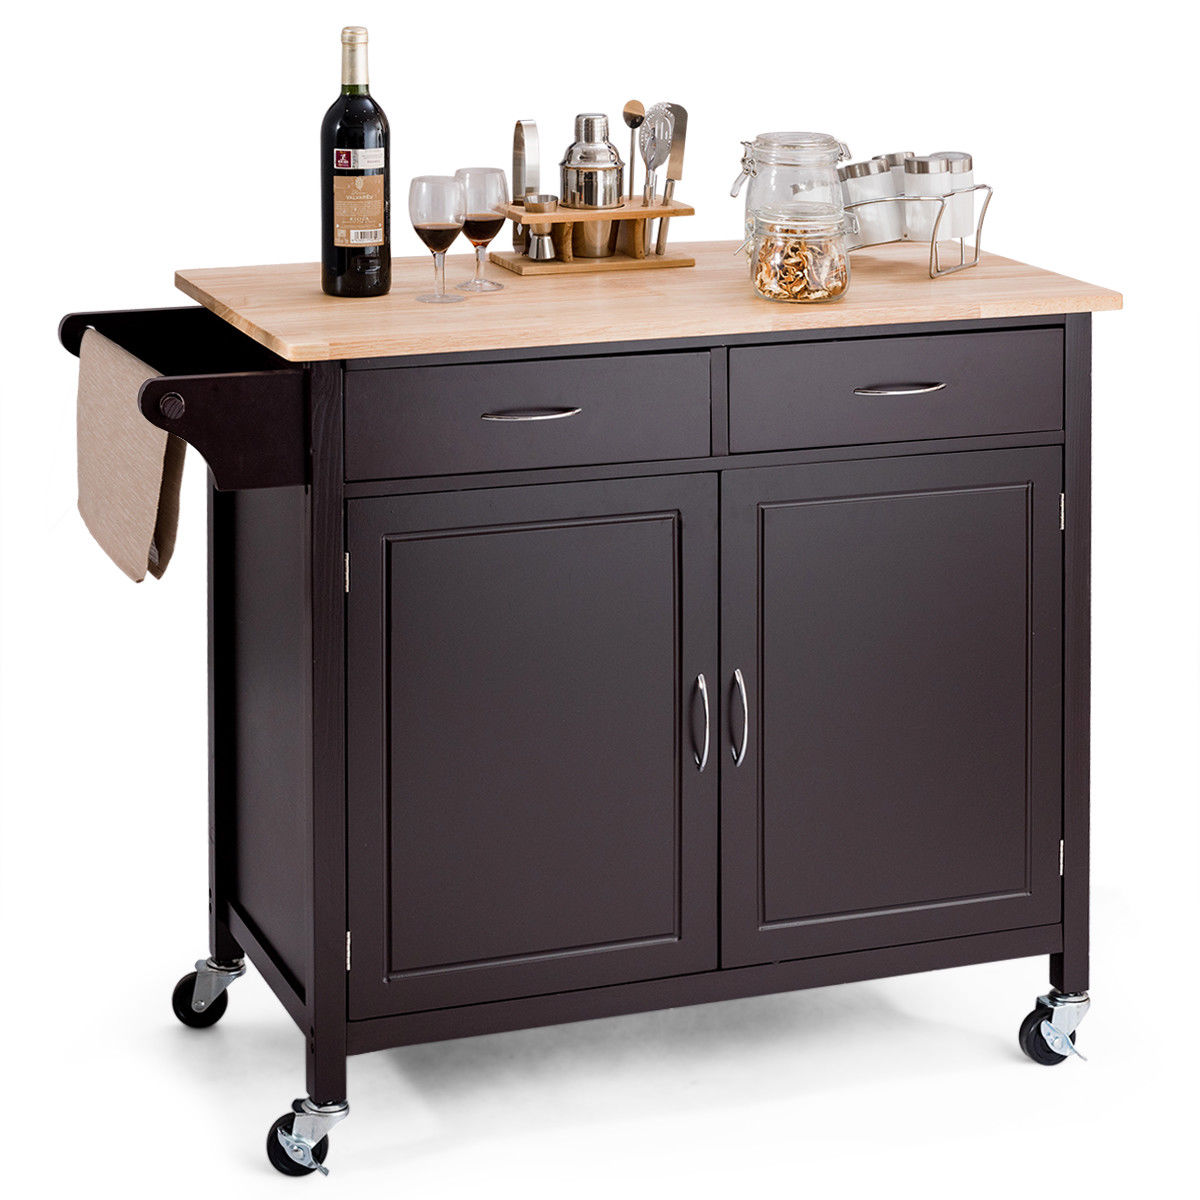 rolling kitchen cabinet pull out shelves costway modern cart island wood top storage trolley utility new walmart com